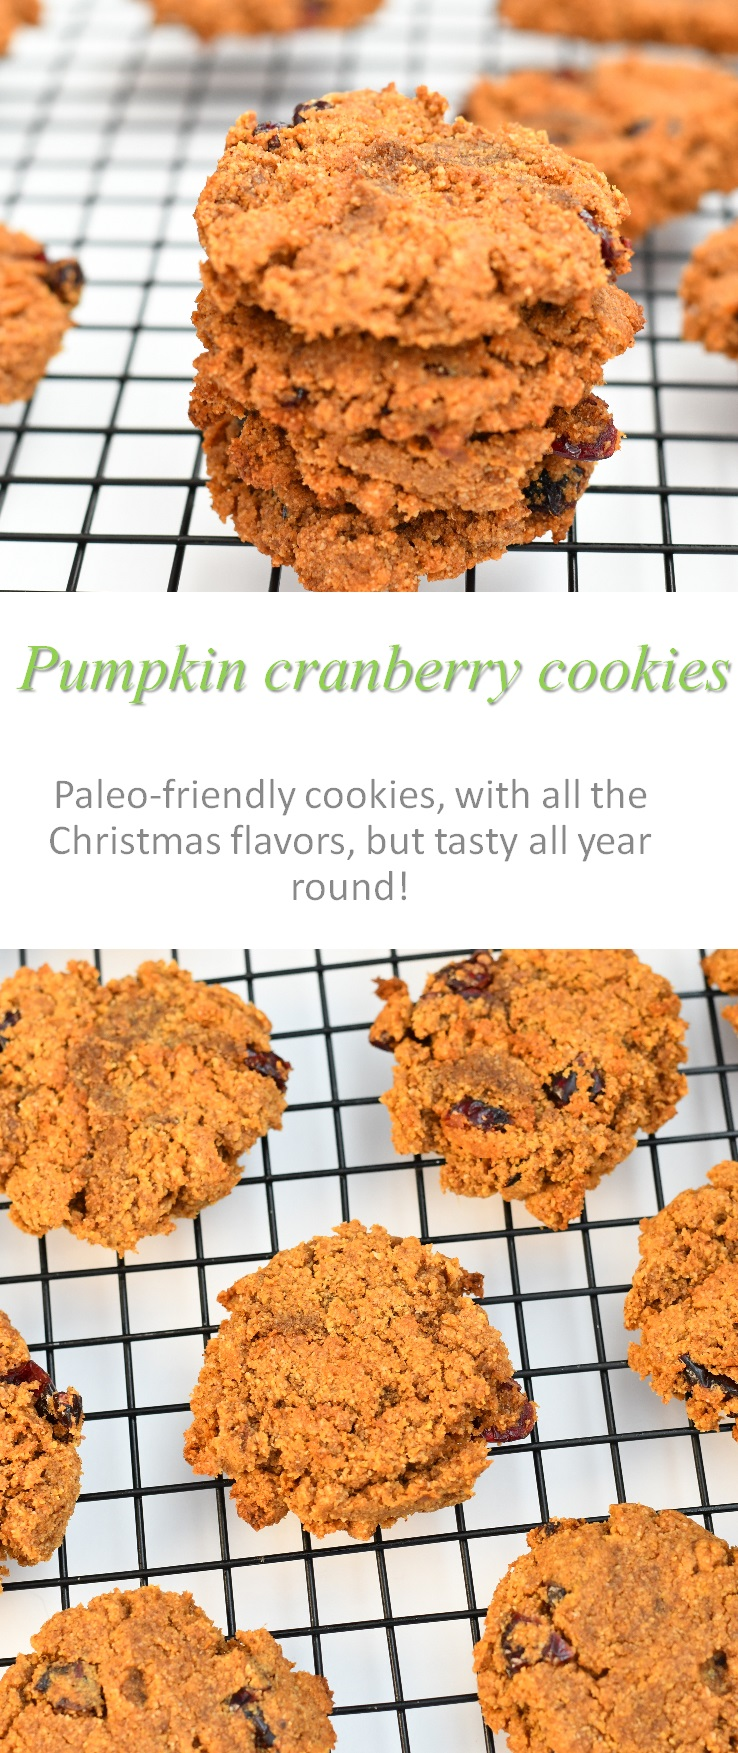 These pumpkin cranberry cookies are full of the Christmas flavors, but yummy enough to eat throughout the year! #pumpkin